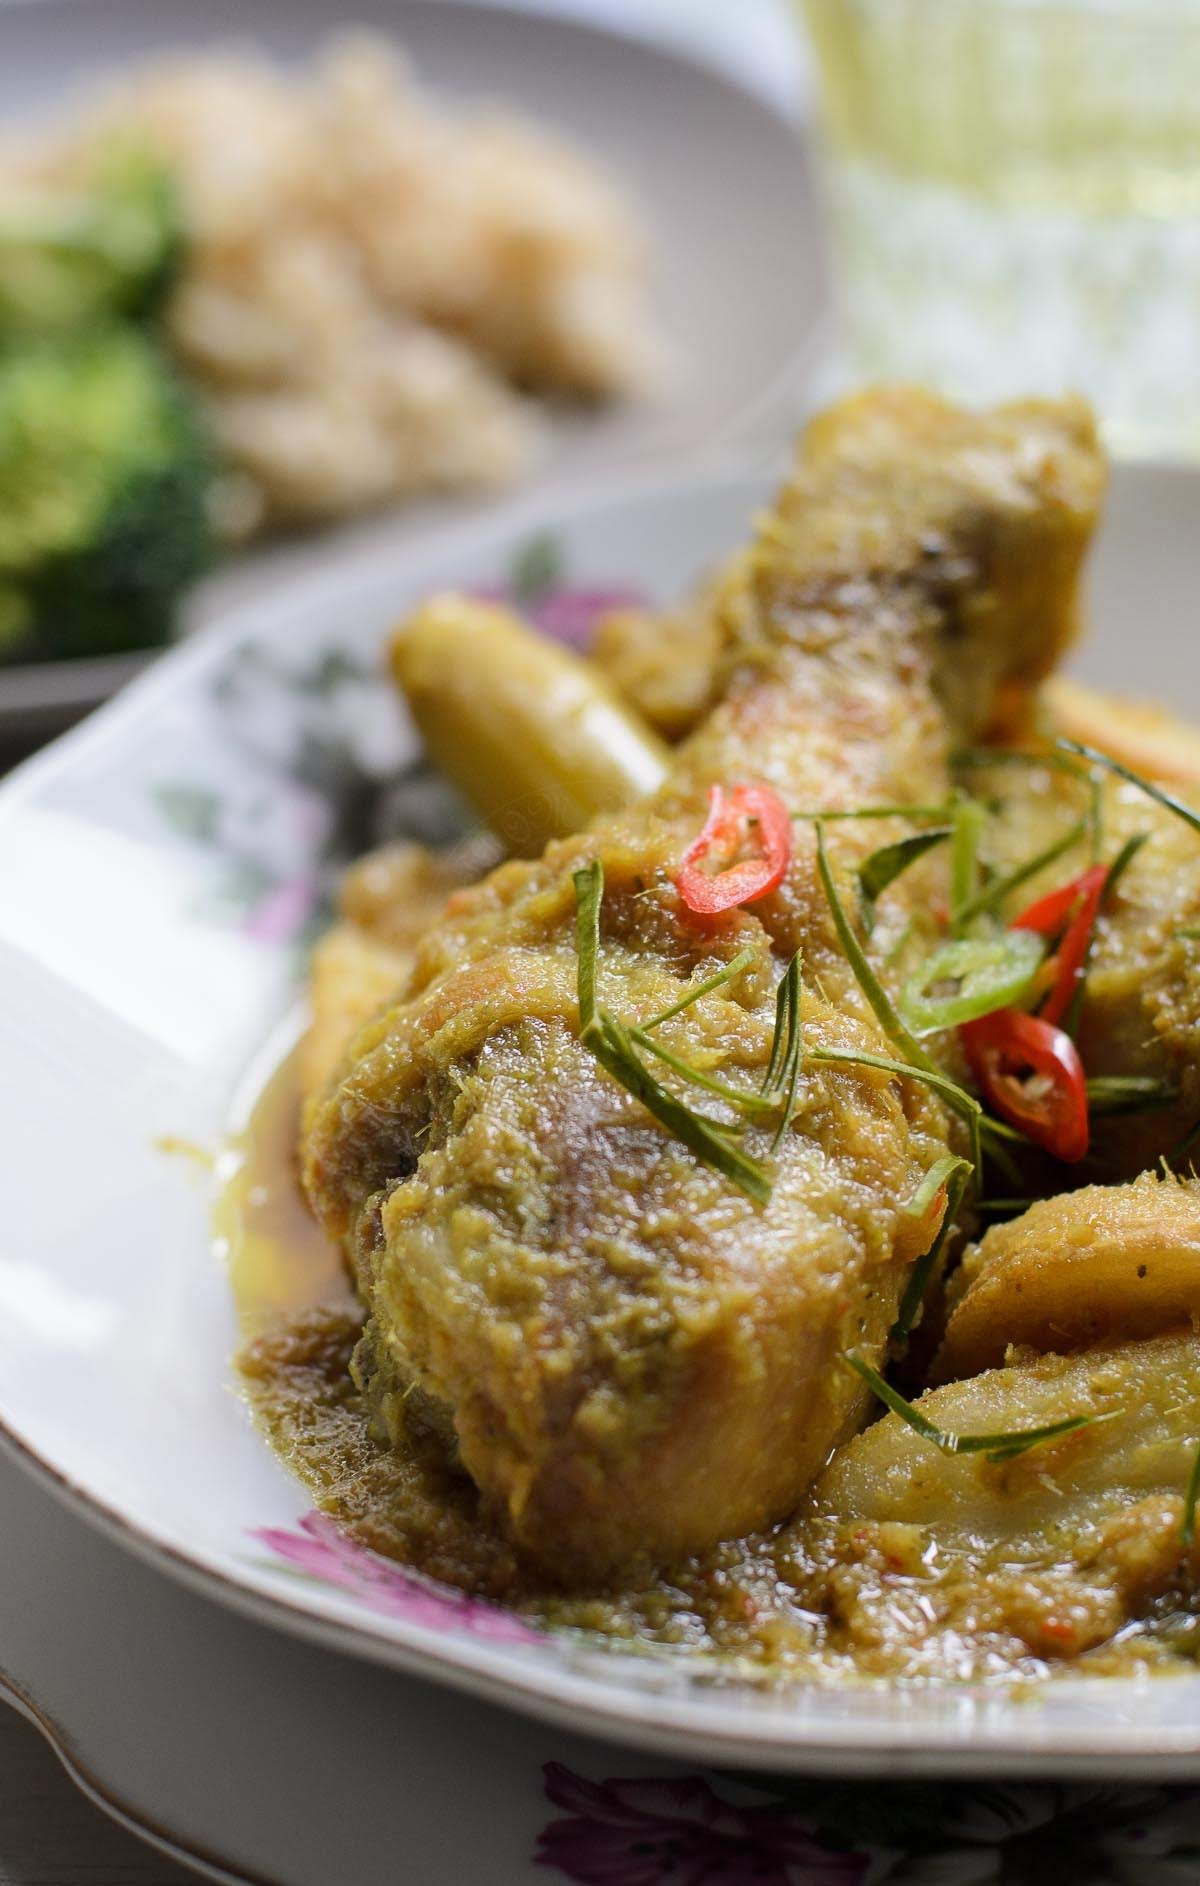 Phat Phet Gai / Thai Fried Spicy Chicken